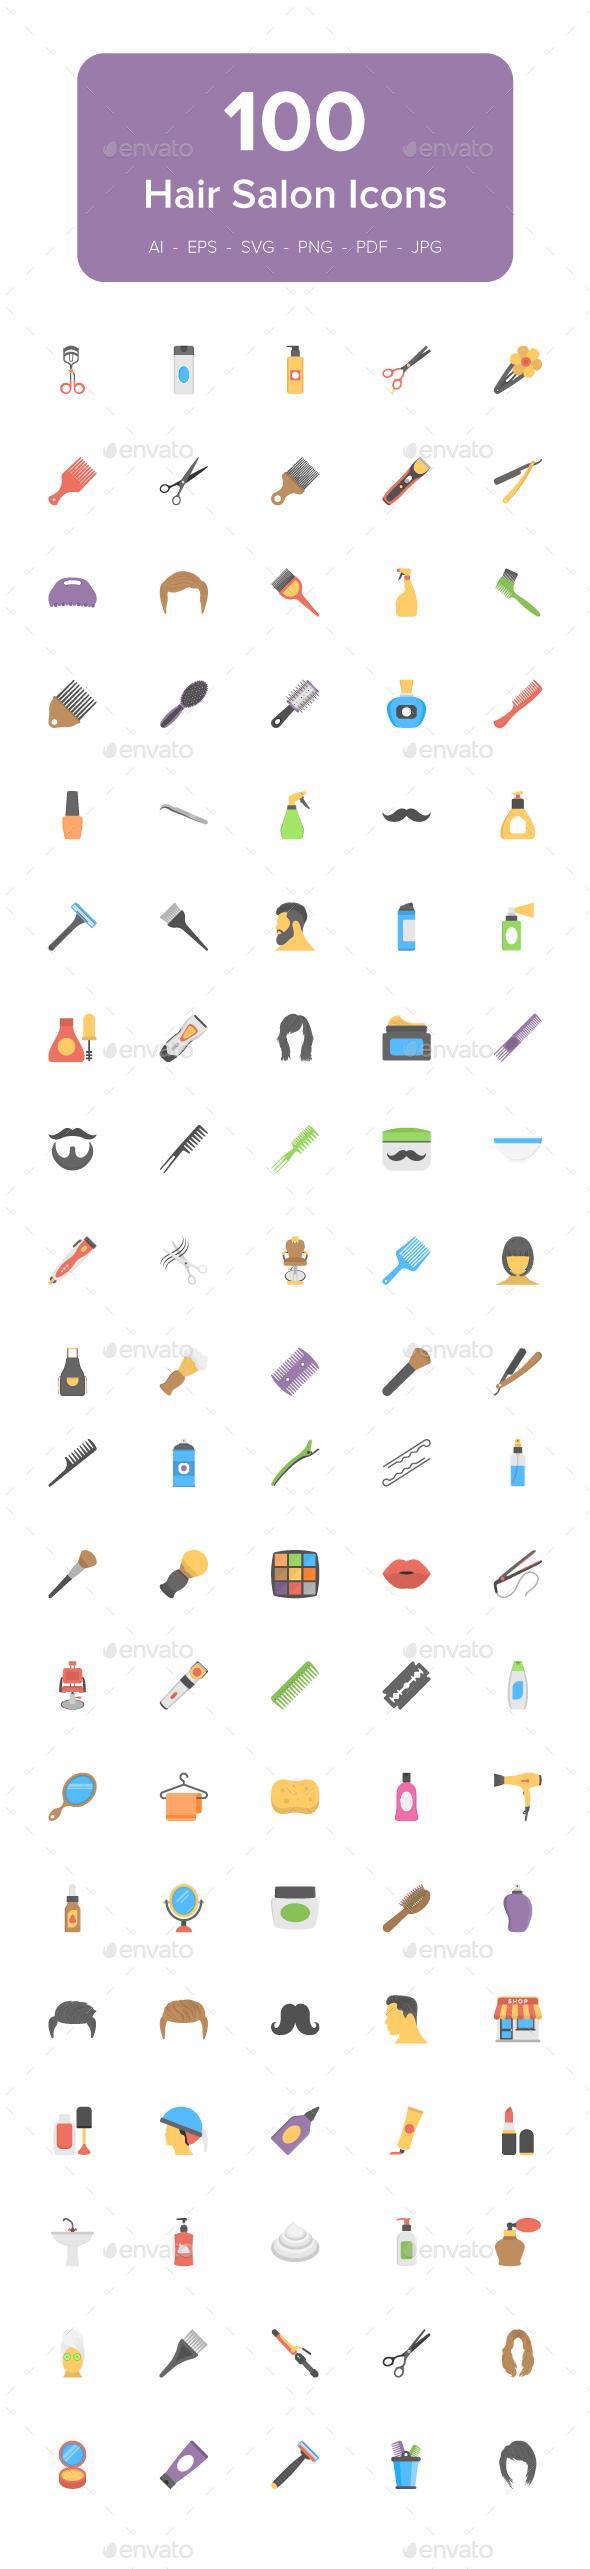 100 Hair Salon Flat Vector Icons - Icons